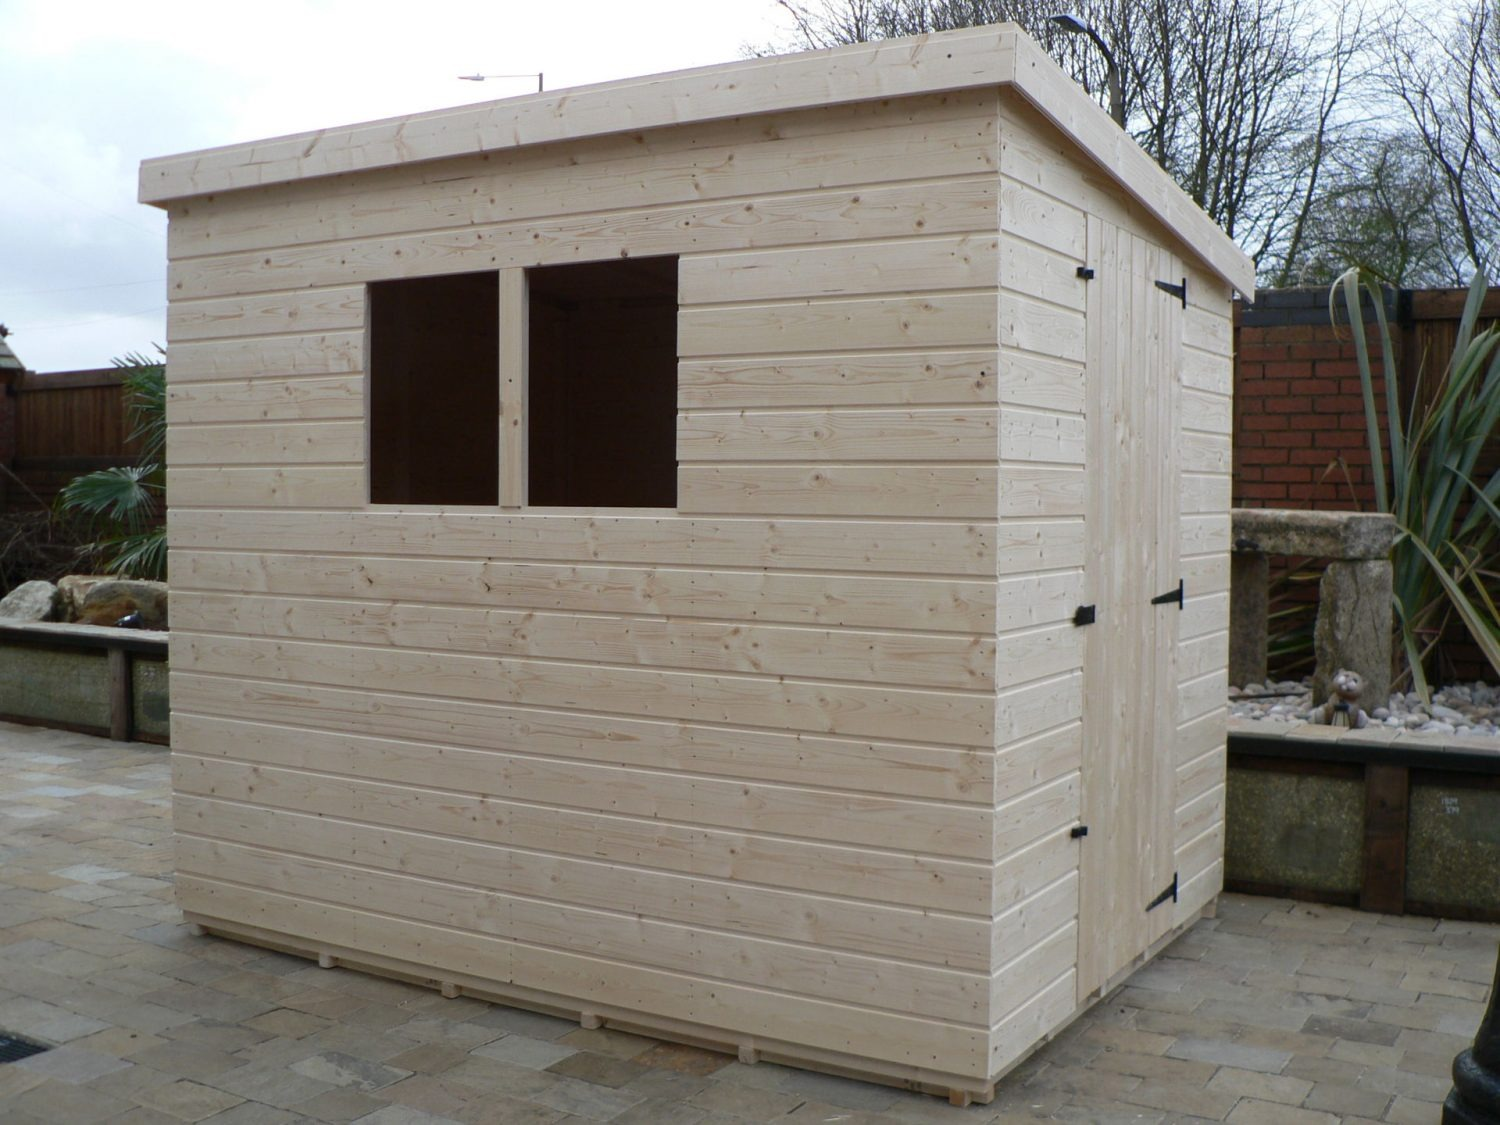 8' X 6' Pent Shed Full Size Windows